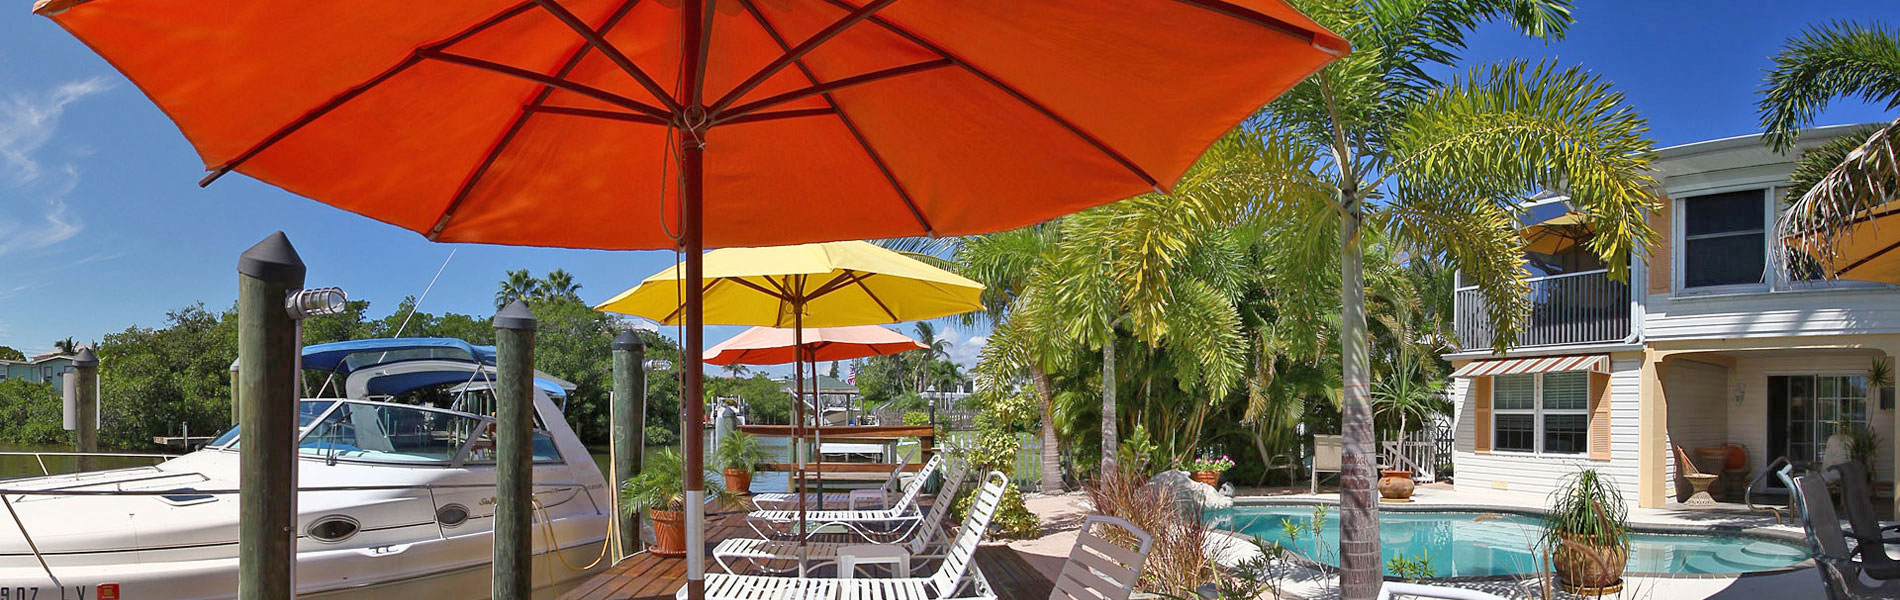 Fort Myers Beach Florida A Boutique Style Waterfront Bed Breakfast